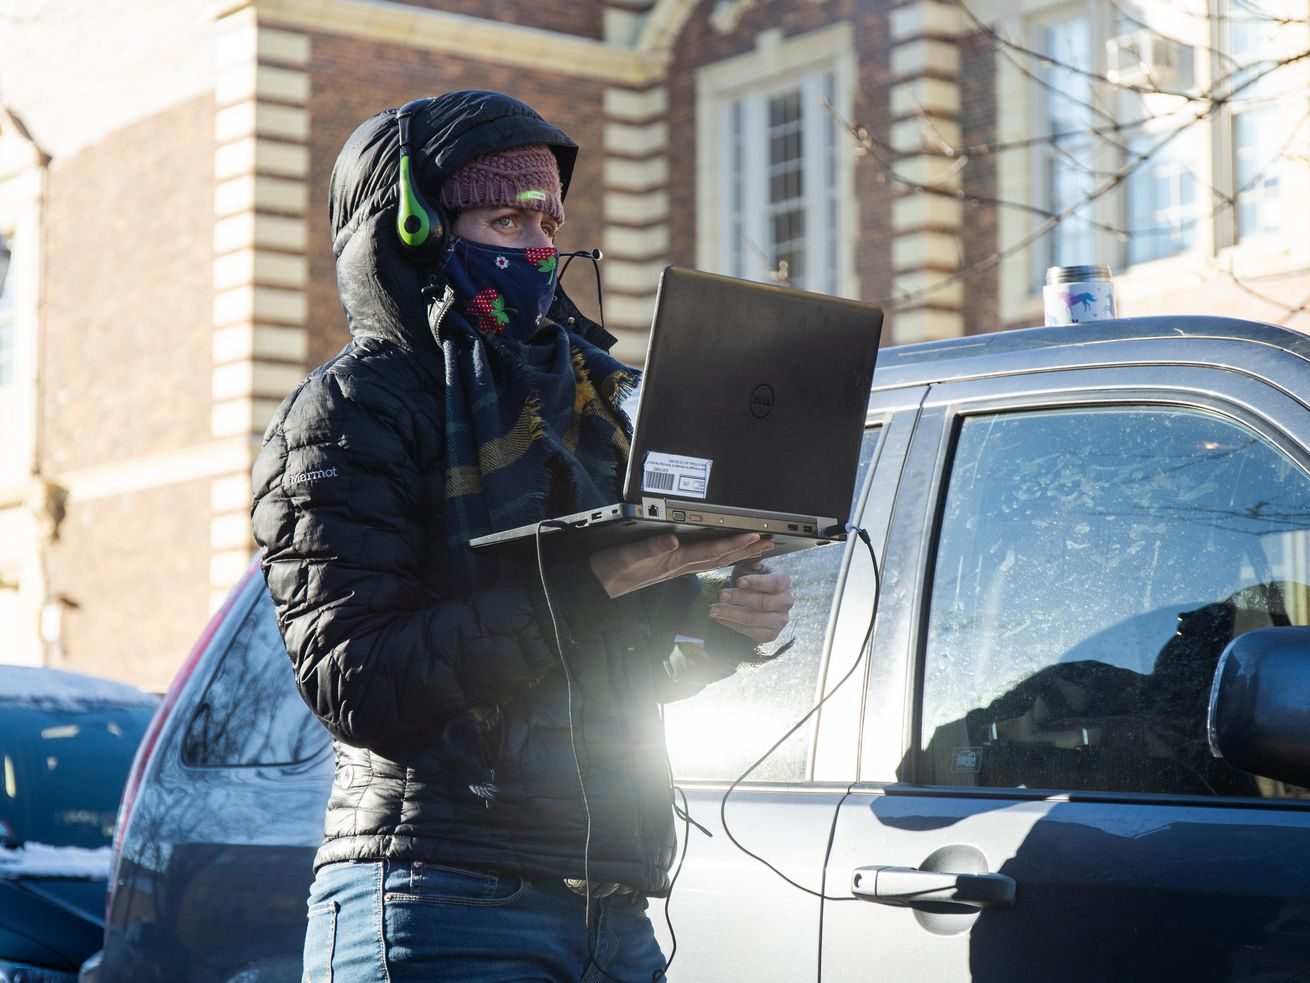 A teacher charges her laptop while teaching outside DeWitt Clinton Elementary School in the West Rogers Park neighborhood to protest Chicago Public Schools' reopening plan due to COVID-19 safety concerns, Thursday morning, Jan. 21, 2021.